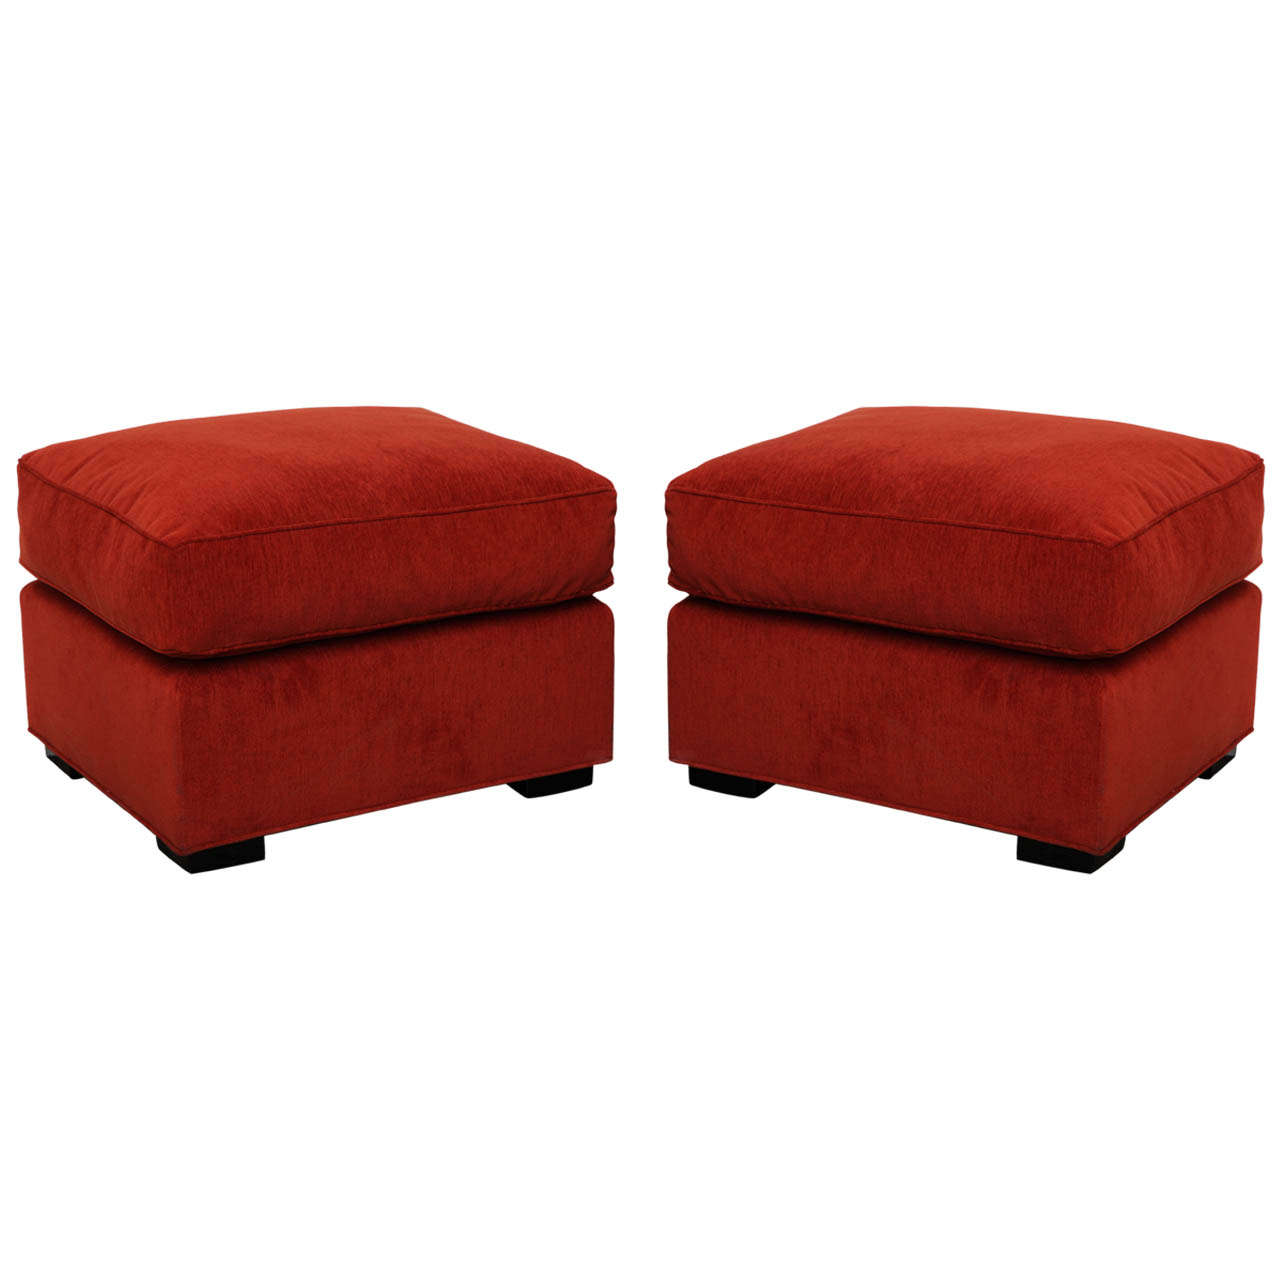 pair of upholstered ottomans for sale at 1stdibs. Black Bedroom Furniture Sets. Home Design Ideas